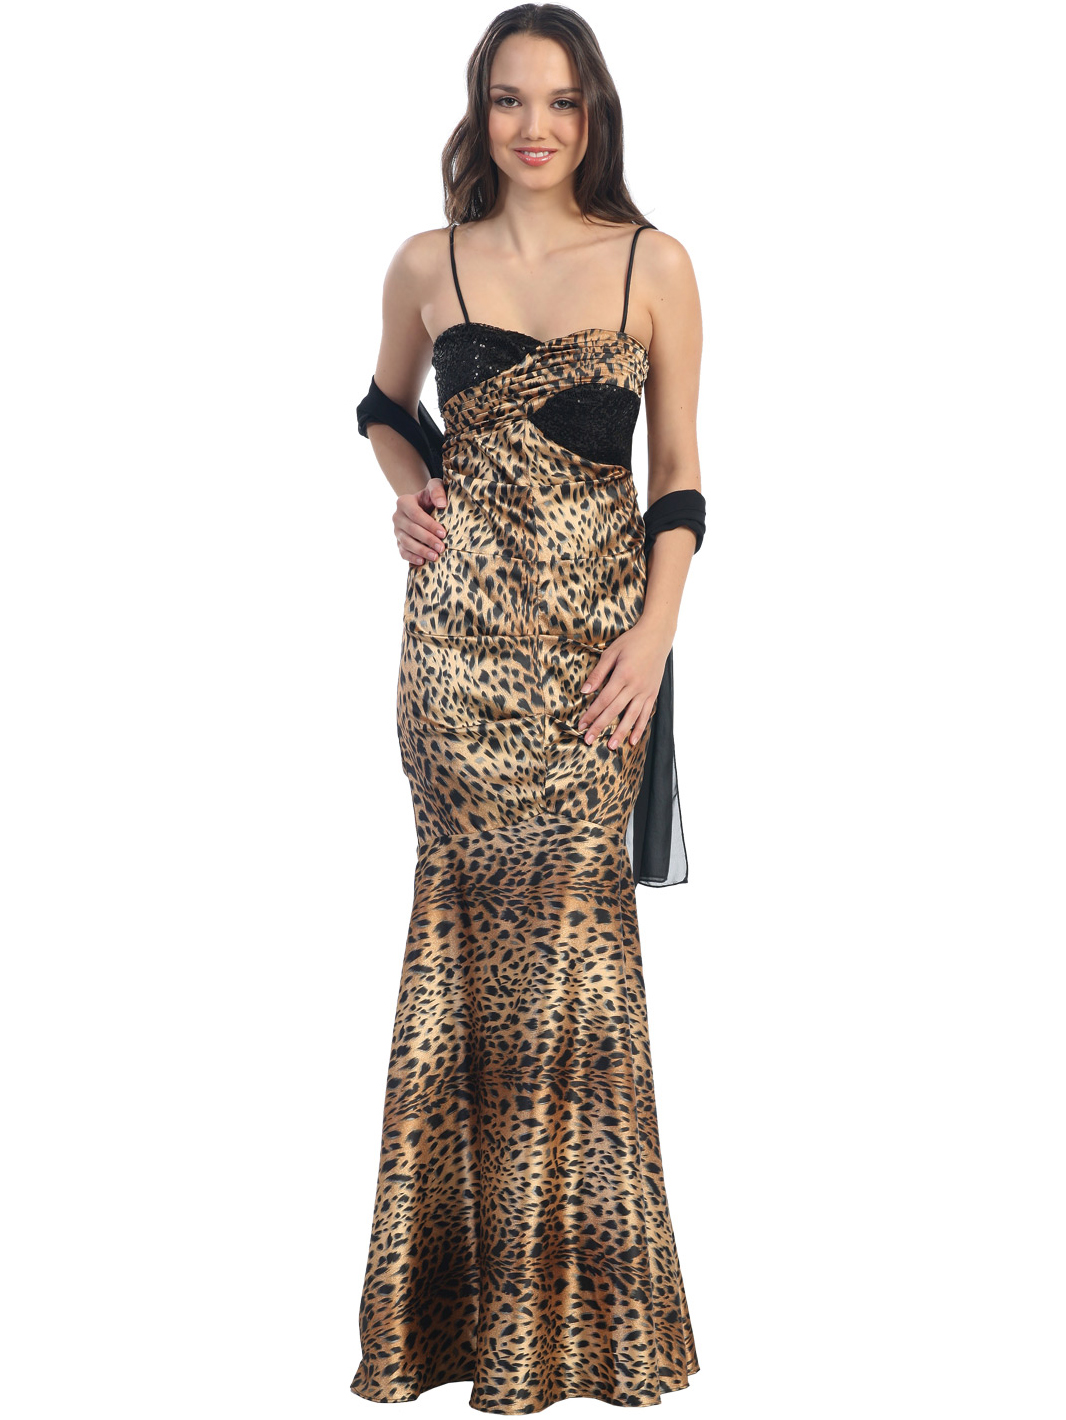 Animal Print Mermaid Style Evening Dress Sung Boutique La